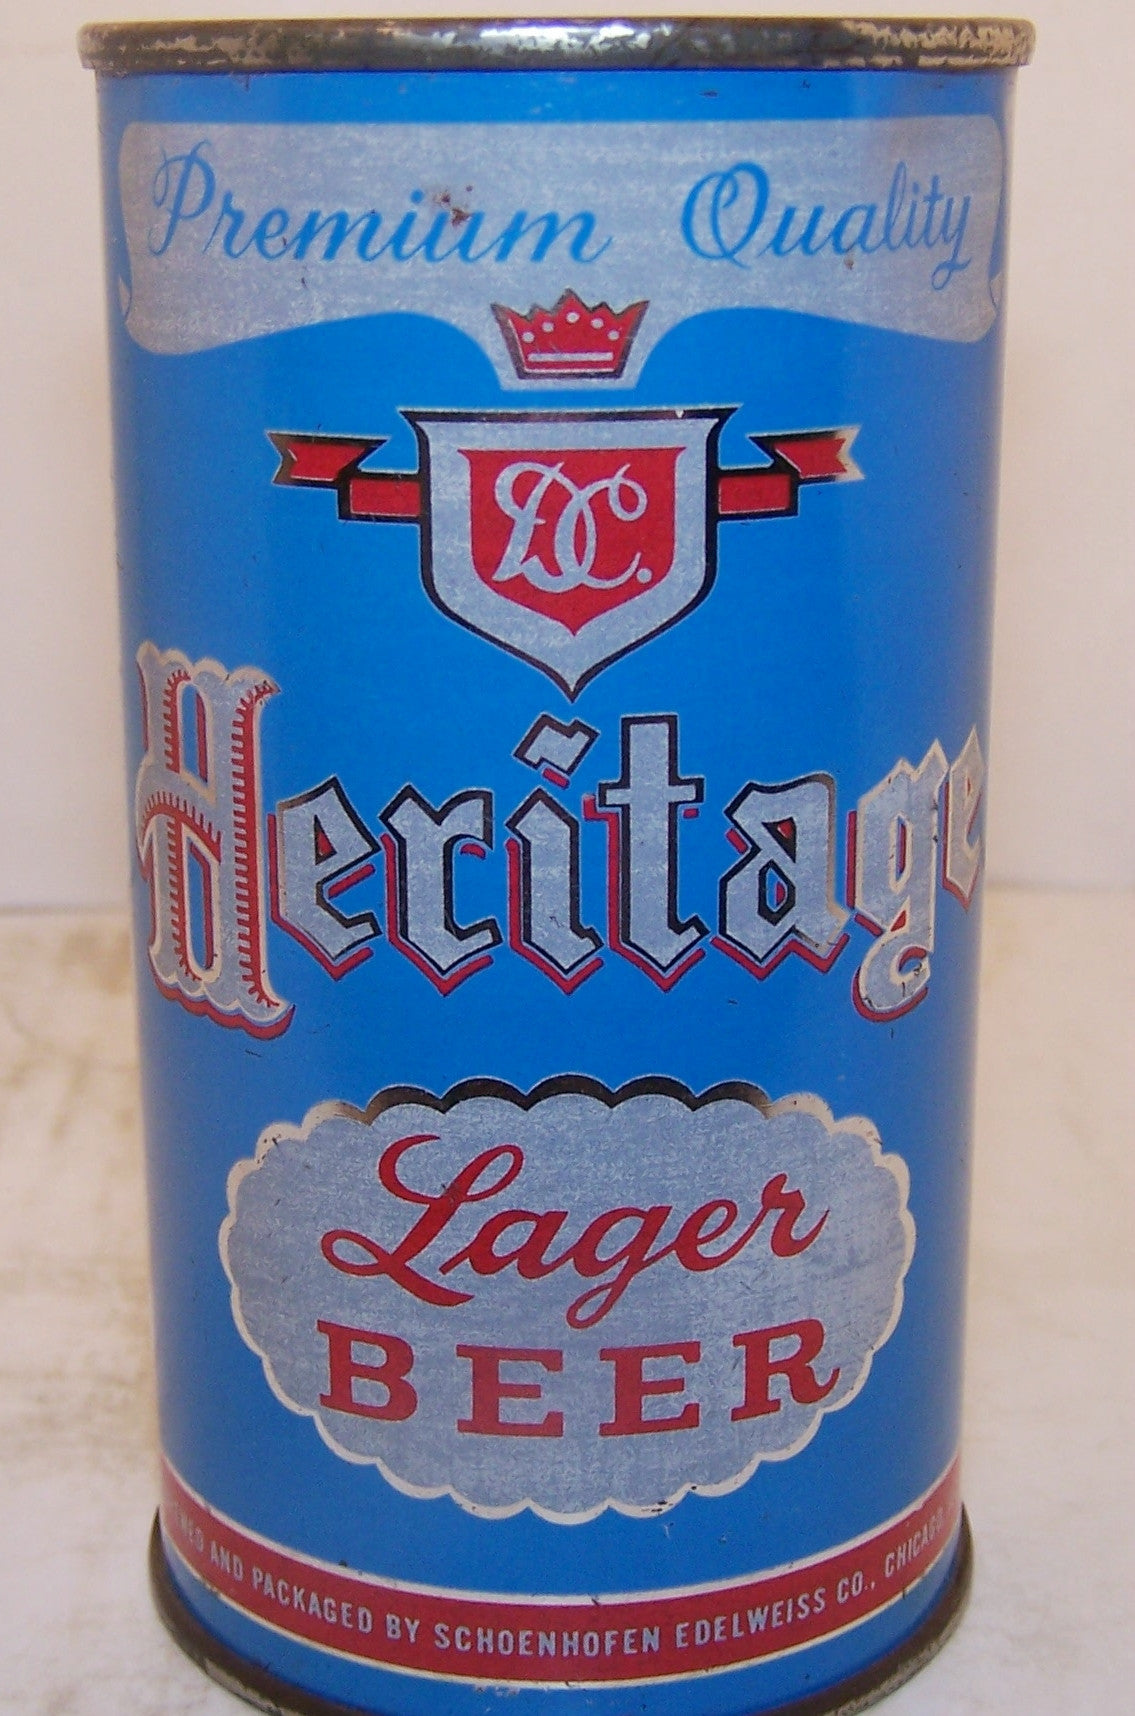 Heritage Lager Beer, USBC 81-35, Grade 1- Sold on 04/06/18